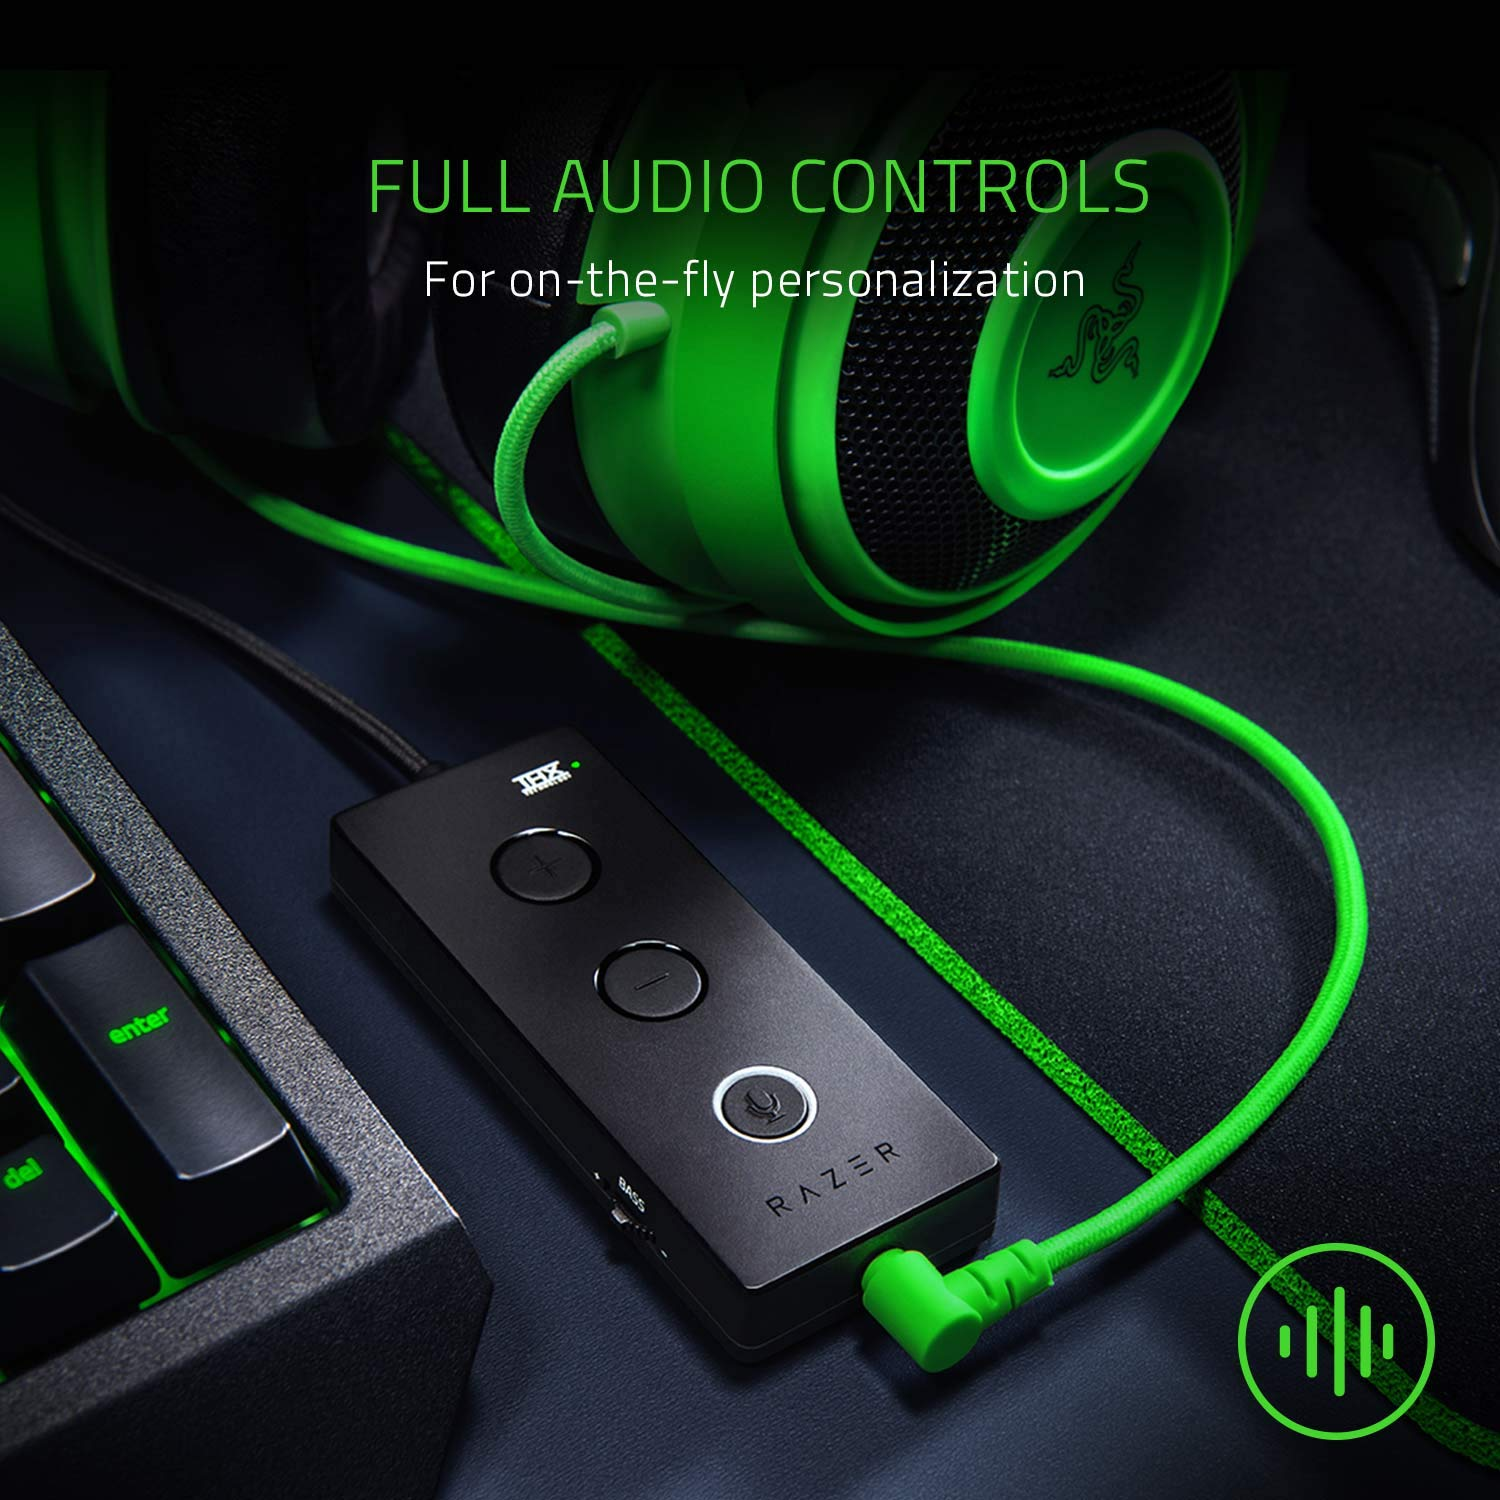 Razer Kraken Tournament Edition: THX Spatial Audio - Full Audio Control - Cooling Gel-Infused Ear Cushions - Gaming Headset Works with PC, PS4, Xbox One, Switch, & Mobile Devices - Black by Razer (Image #2)